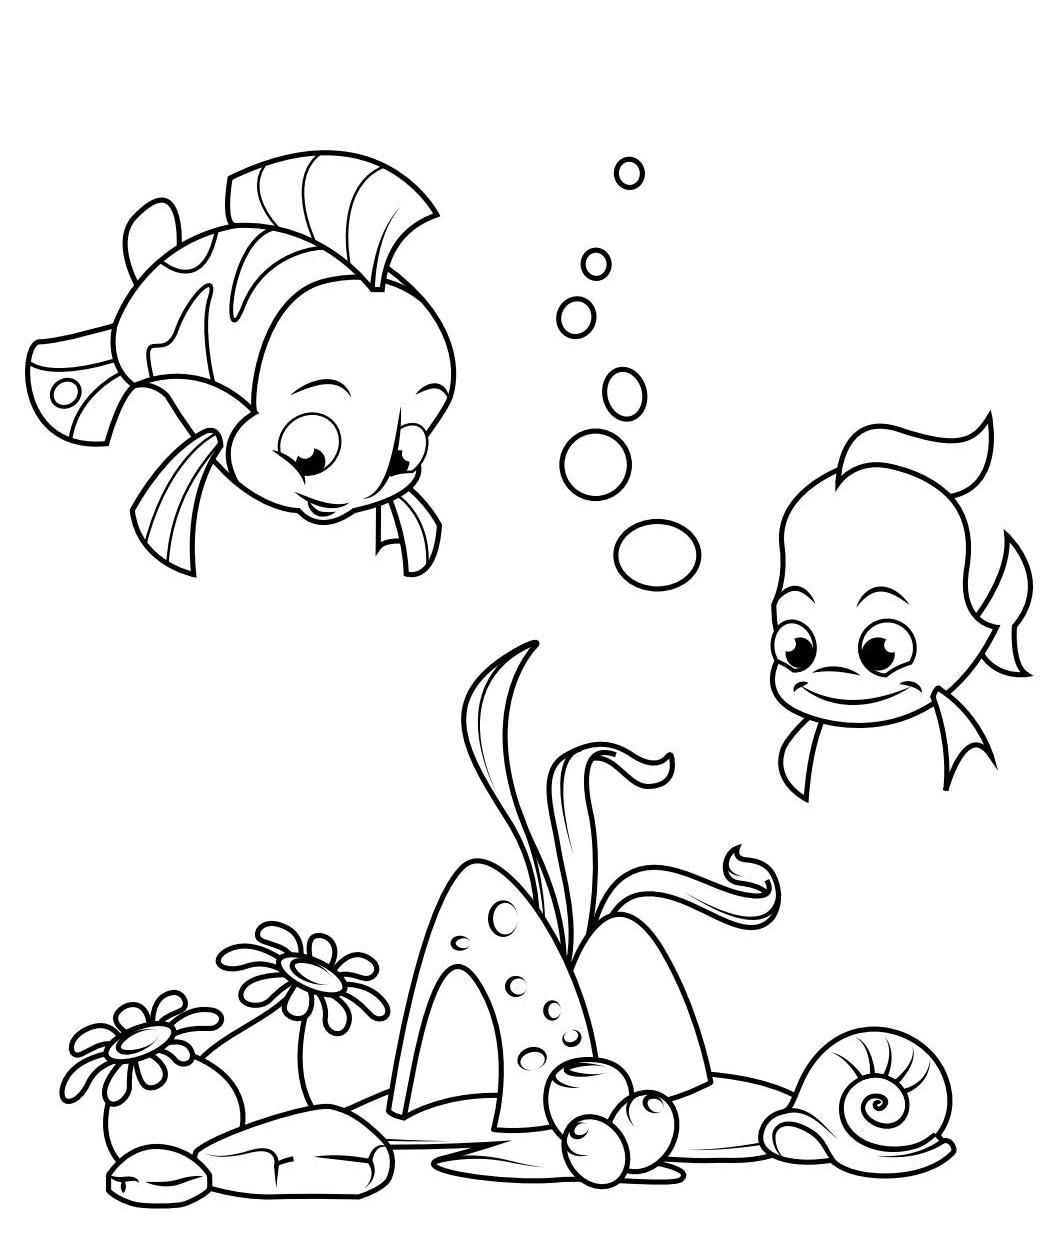 Fish Coloring Pages Pdf En 2020 Con Imagenes Dibujos